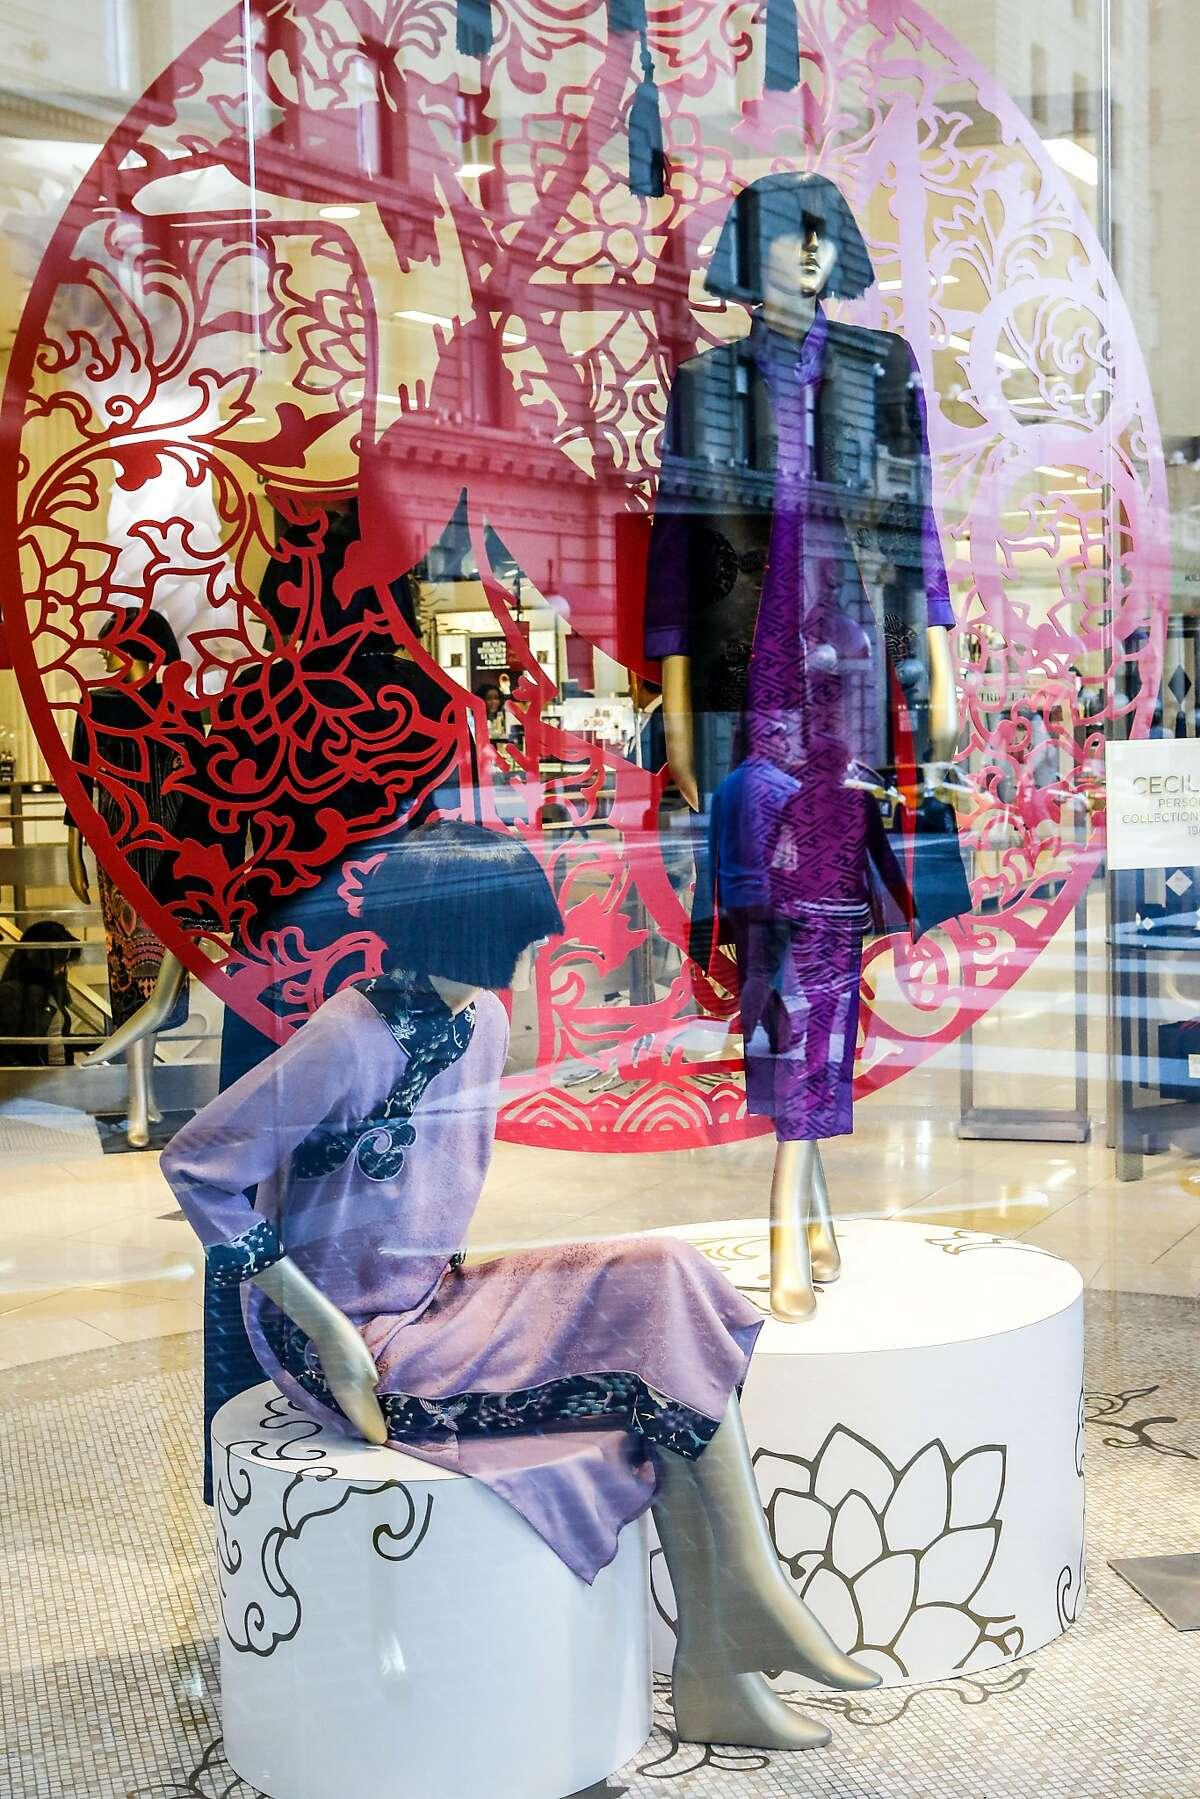 Cecilia Chiang's fashions that she designed in honor of Lunar New Year are seen at Saks Fifth Avenue on Friday, February 15, 2018 in San Francisco, California.